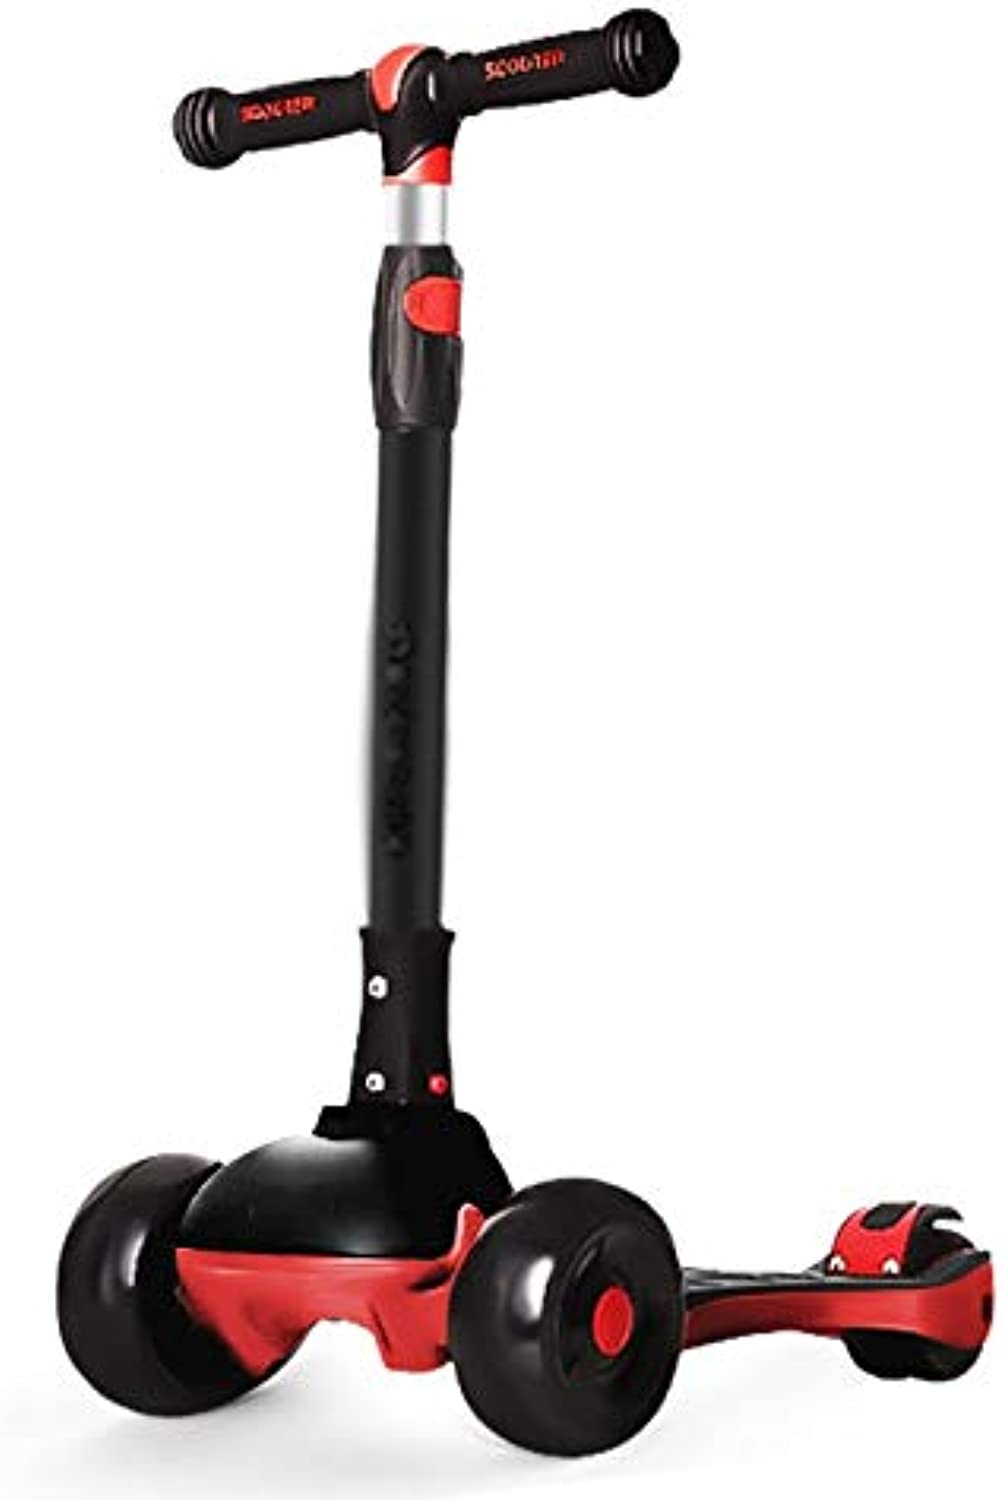 LJHBC Wheel Scooter 3Wheel Scooter with Flash Height Adjustable 6074cm Easy to fold Boy Girl Bearing Weight 80kg 312 Years Old (color   Black)